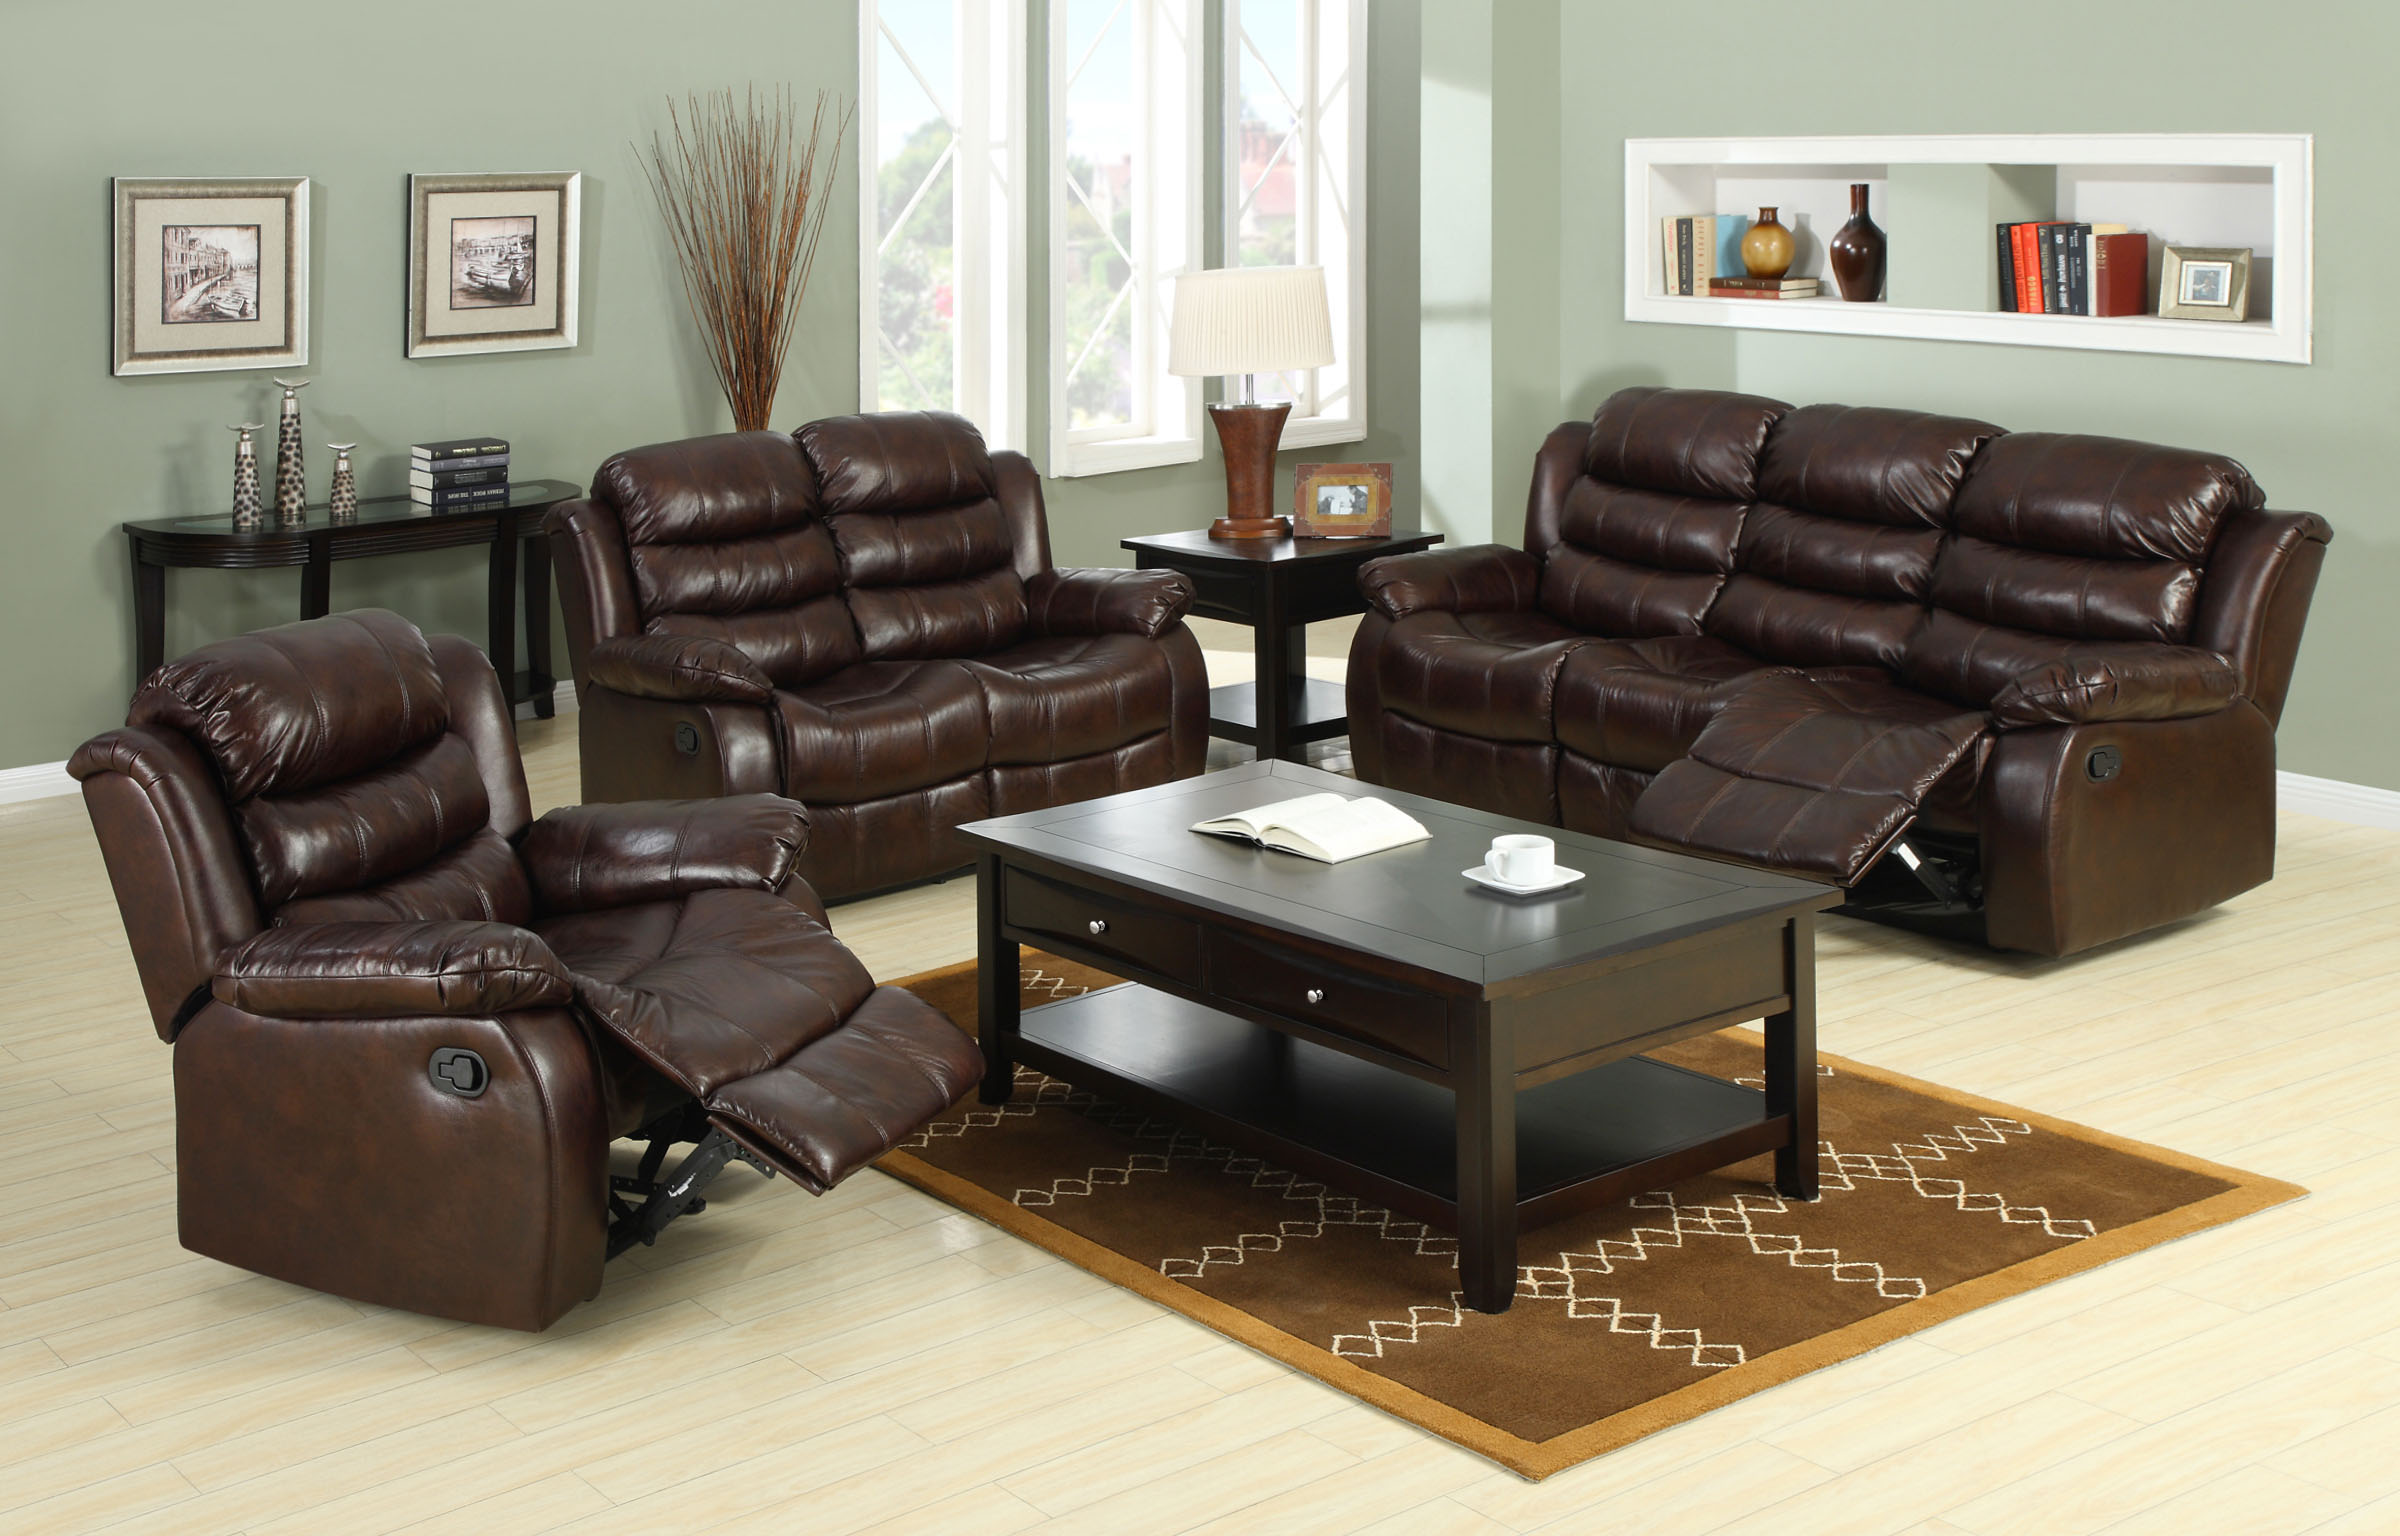 storage reclining product brown microfiber double prolounger loveseat garden seat free wide recliner home